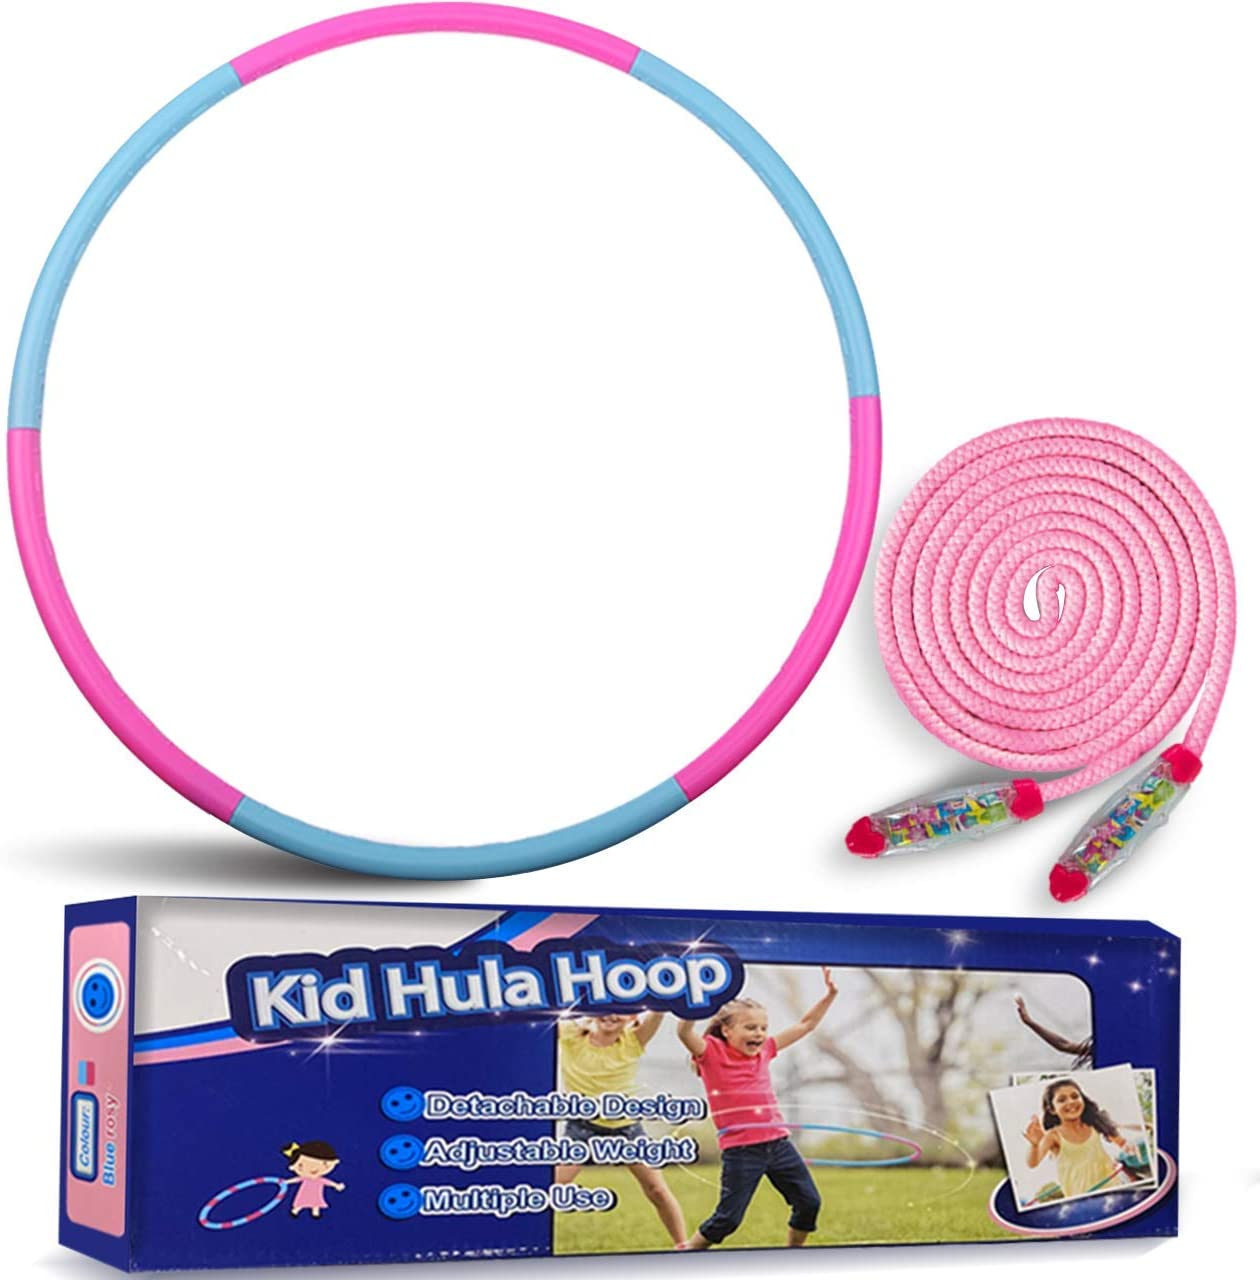 Dance rongrong 2 Pack Kids Hoola Hoop Adjustable Size/Weight Colorful Detachable Hoola Hoops Plastic Toy for Kids Playing Bodybuilding Gymnastics Lose Weight